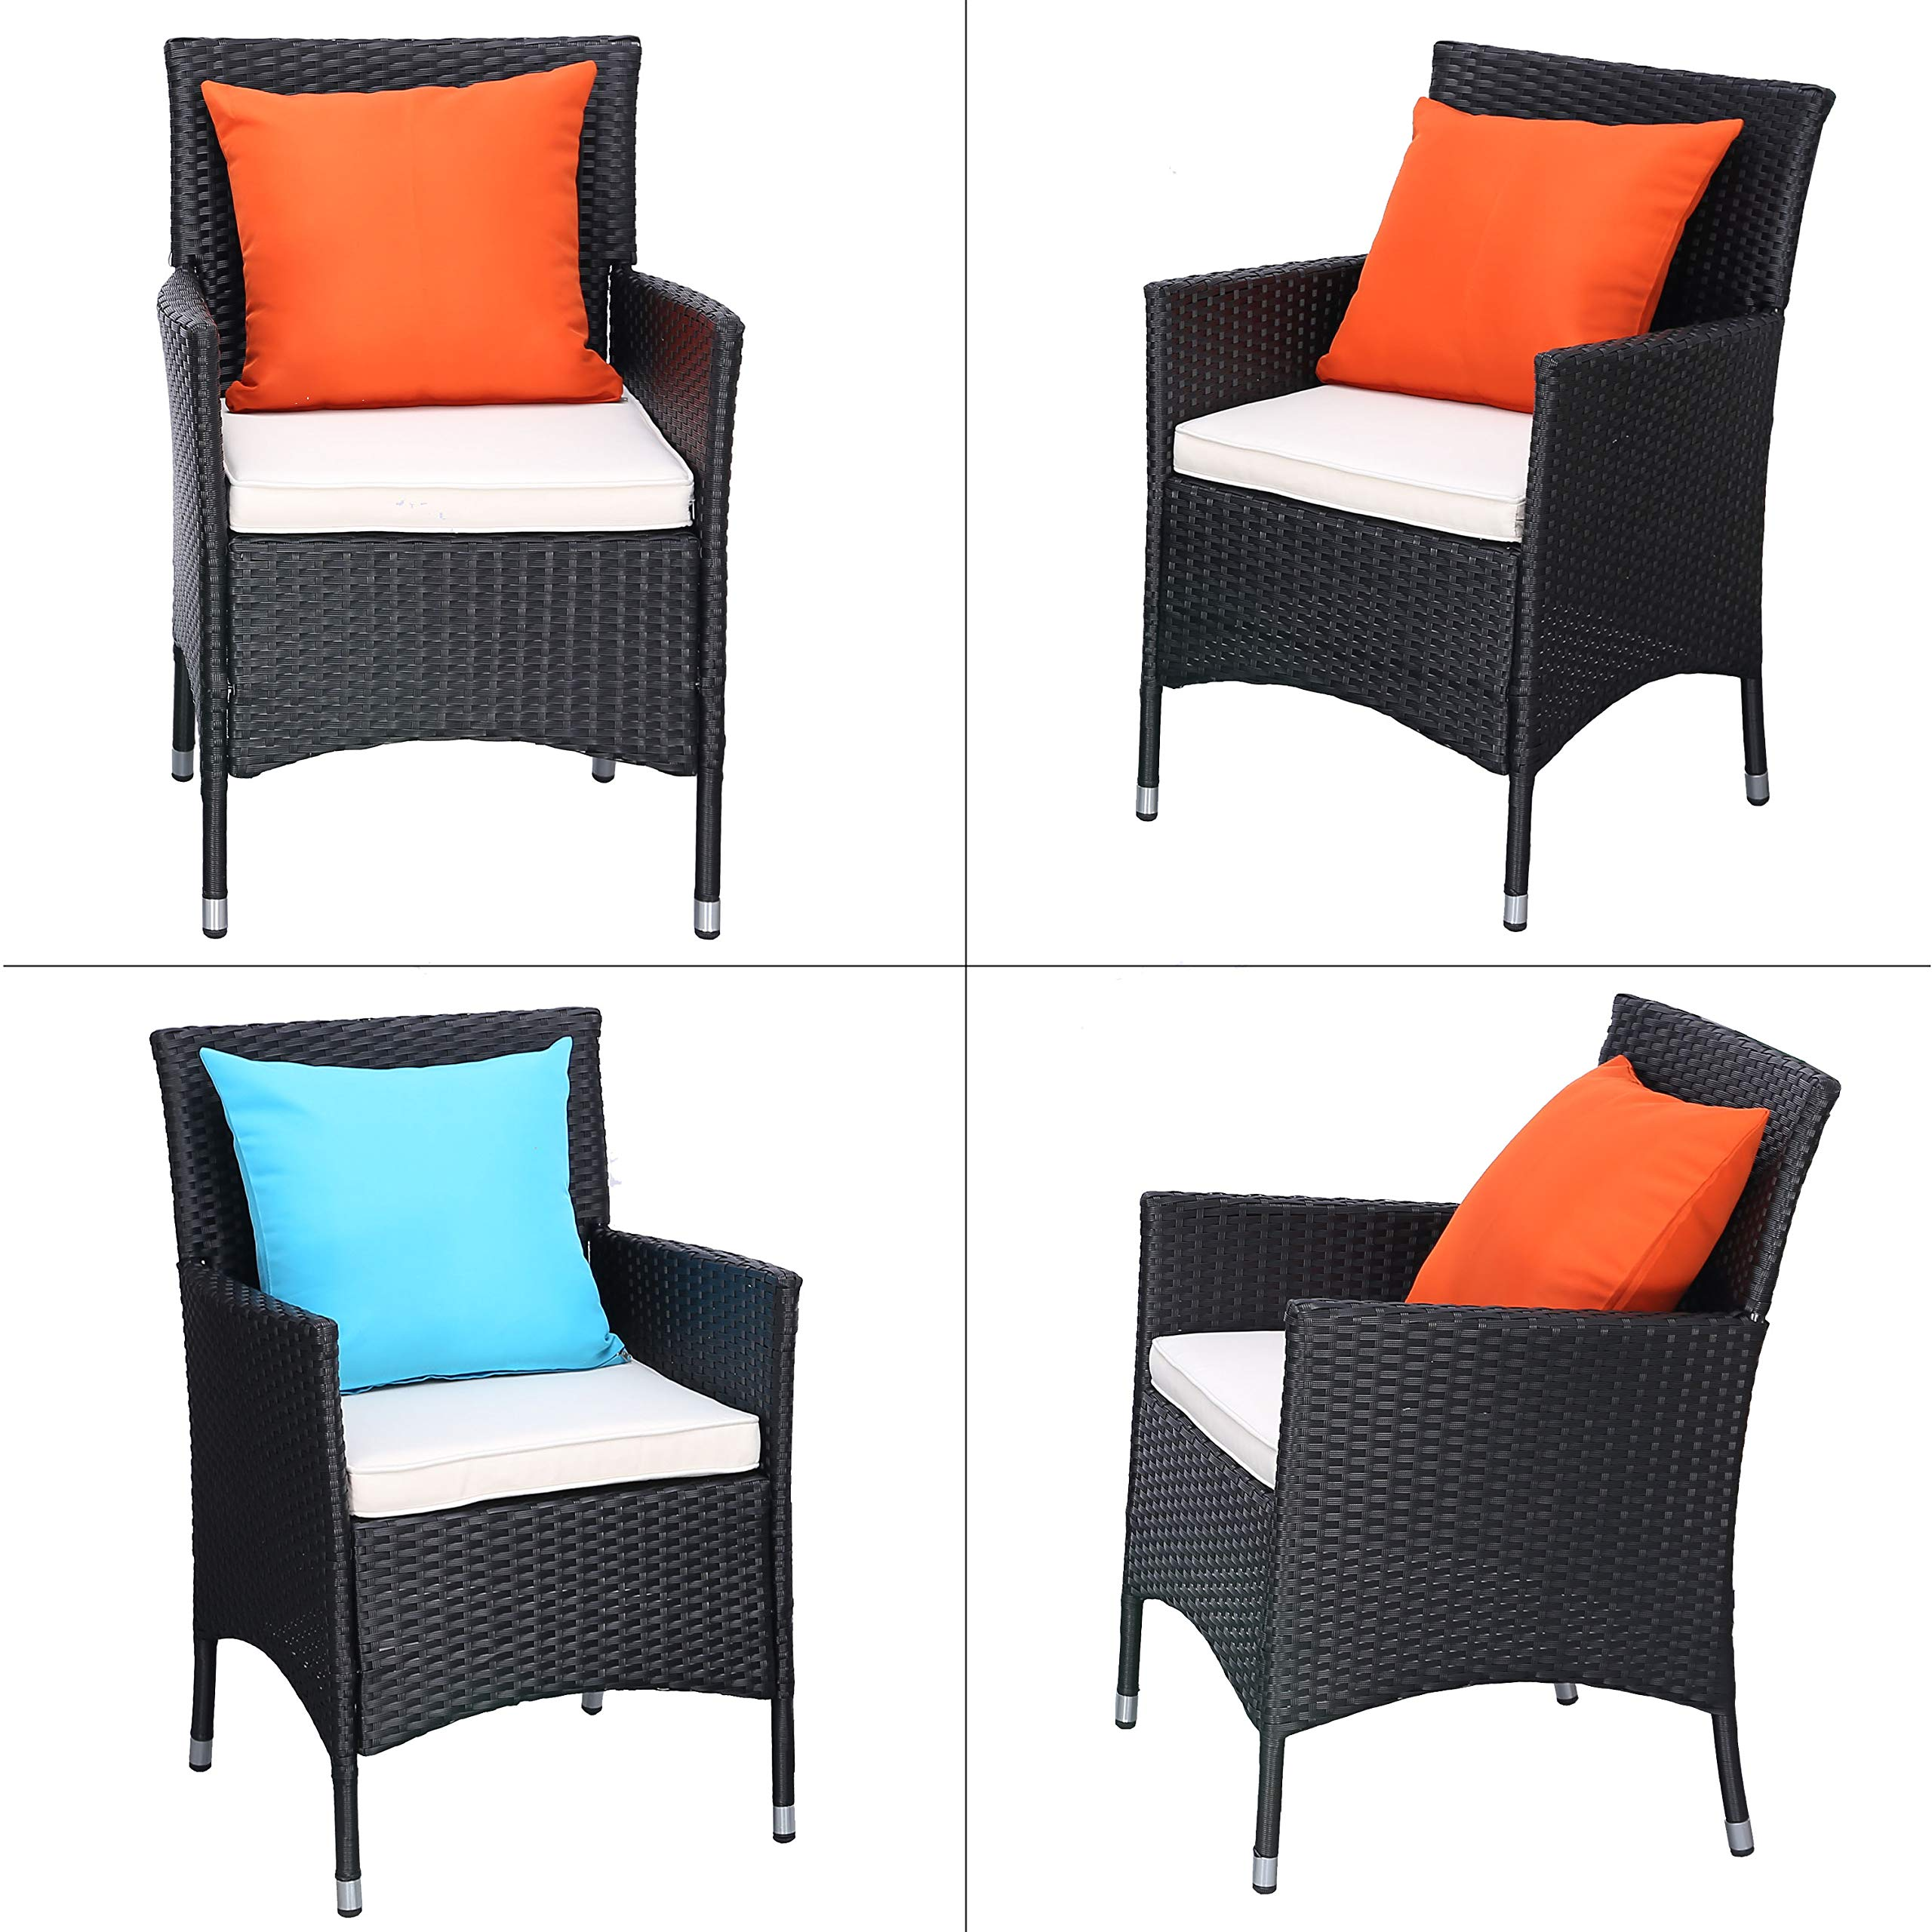 Do4U 3 Pieces Patio Furniture Set Outdoor Wicker Conversation Set Cushioned PE Wicker Bistro Set Rattan Chairs with Coffee Table | Porch, Backyard, Pool Garden | Dining Chairs (961-BLK-BEG) by Do4U (Image #4)